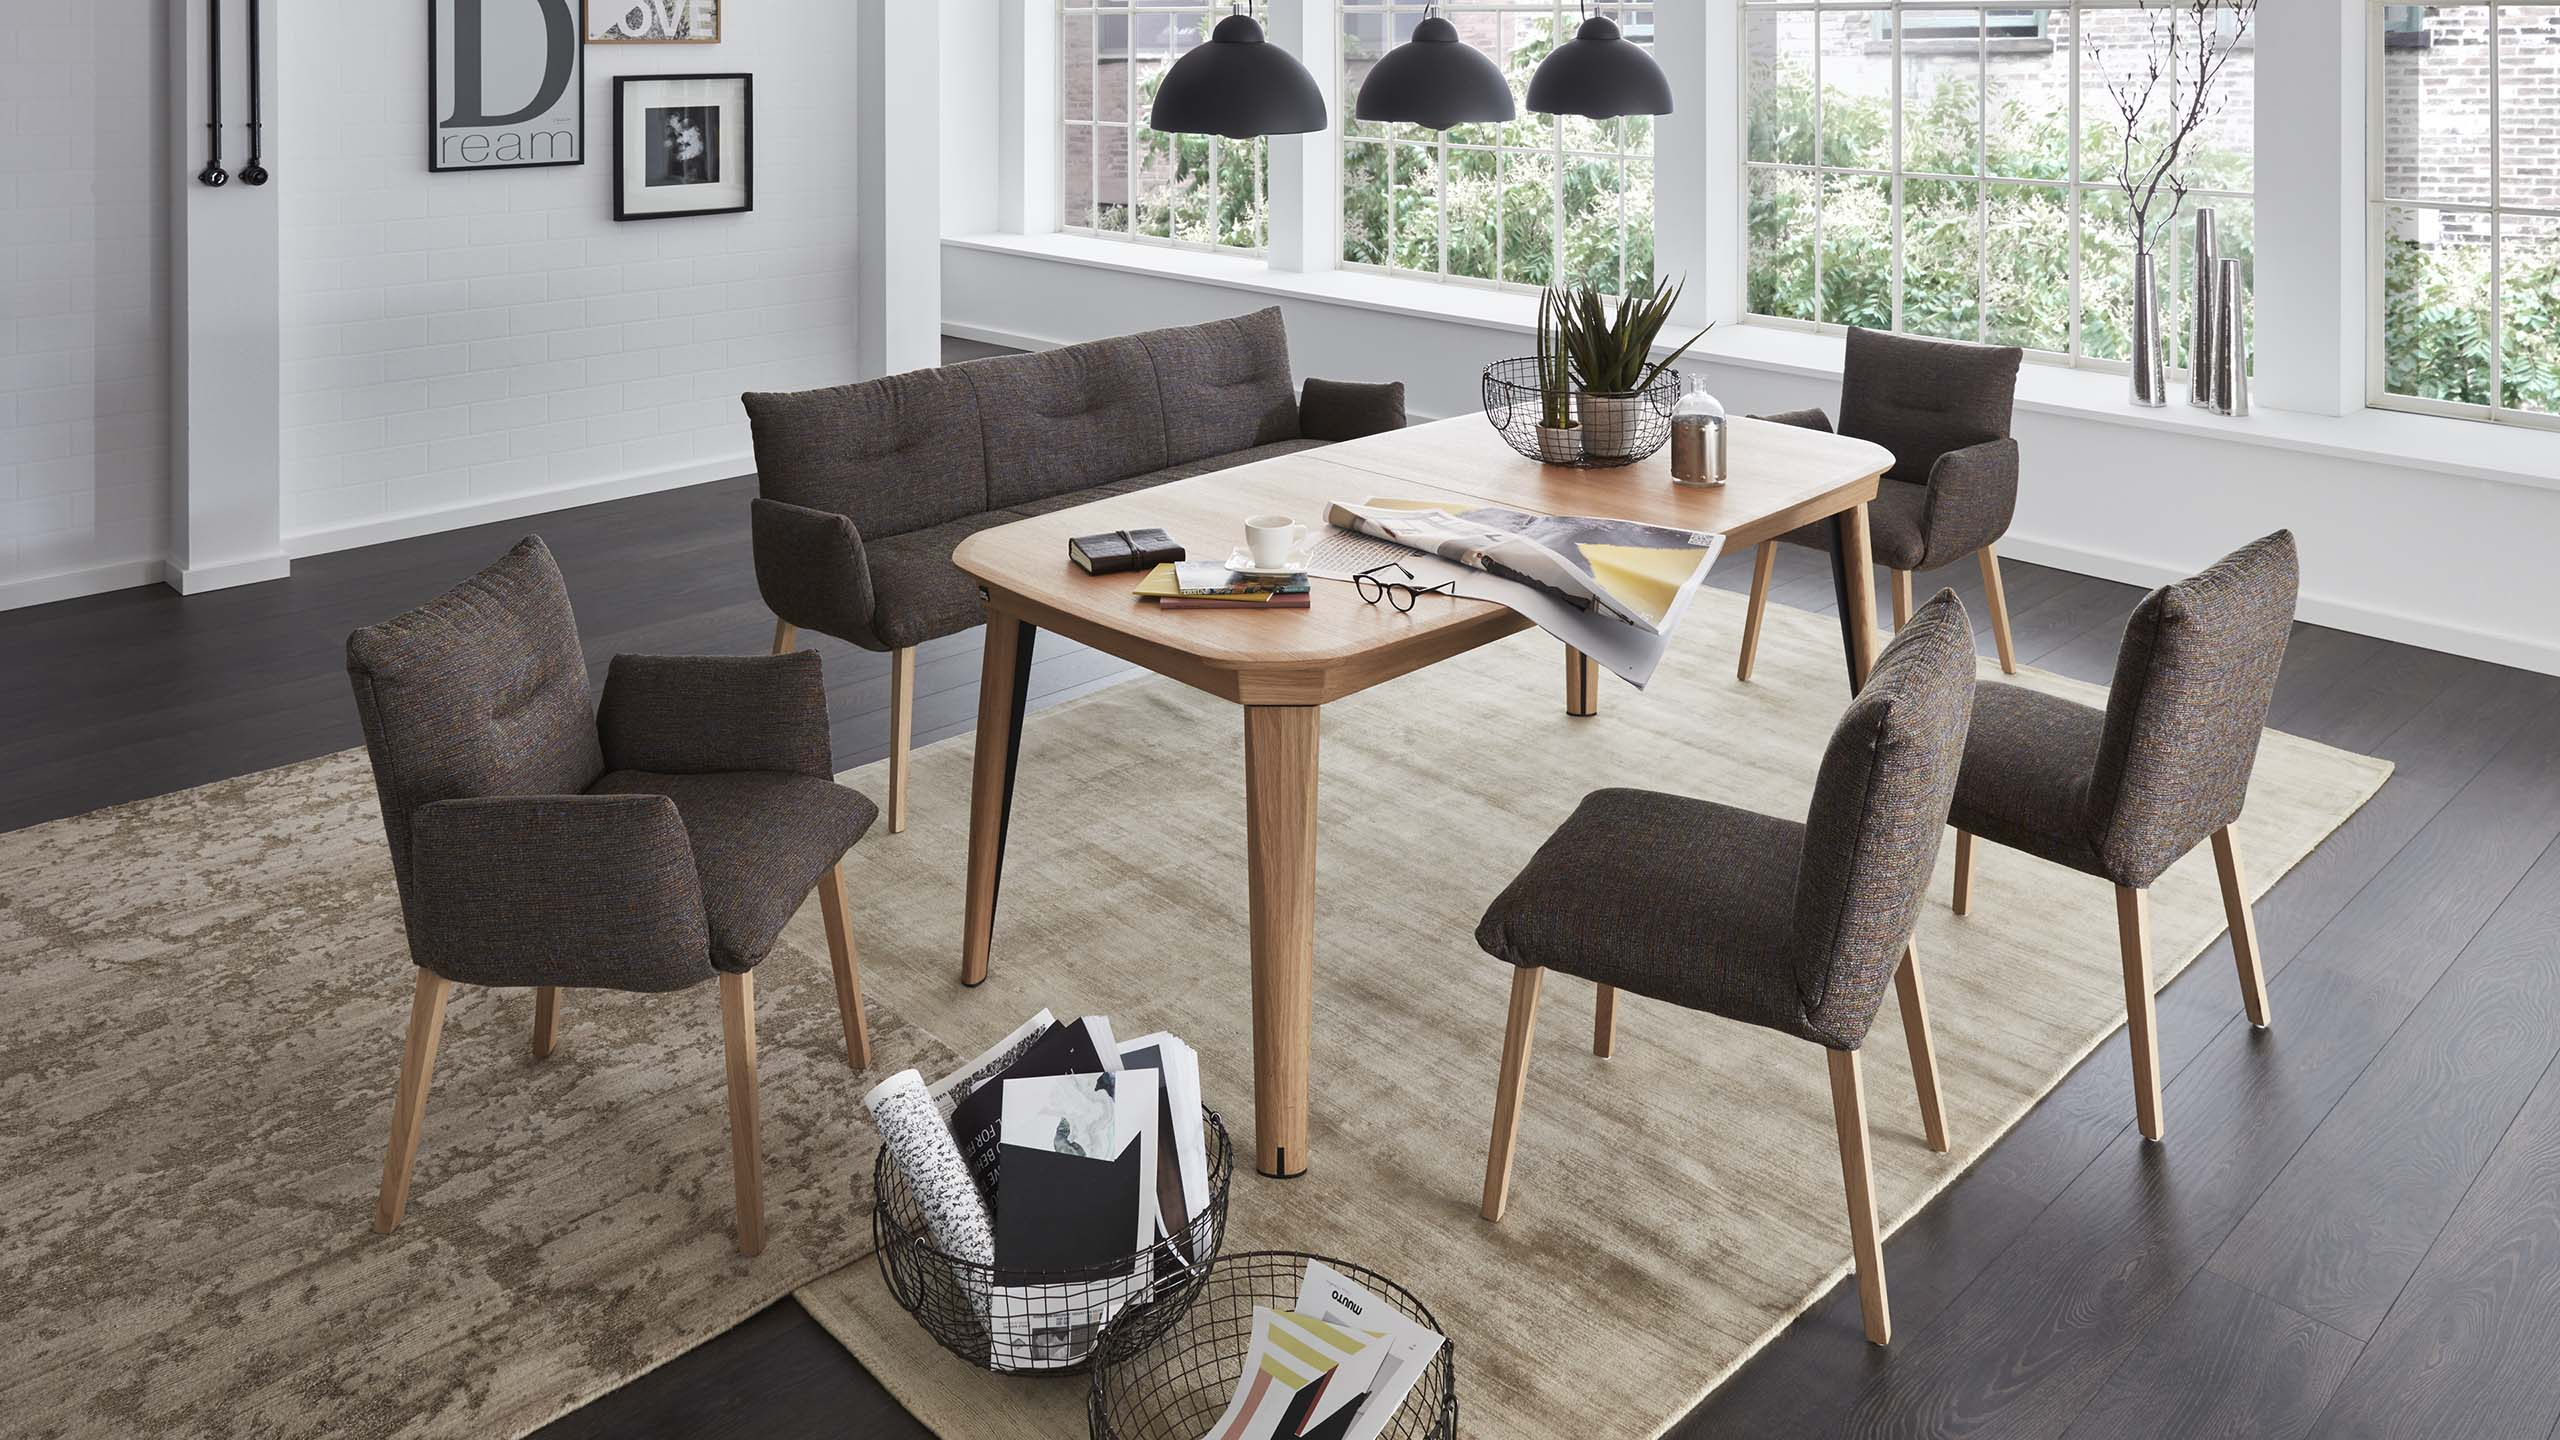 Interliving Esszimmer Serie 5001